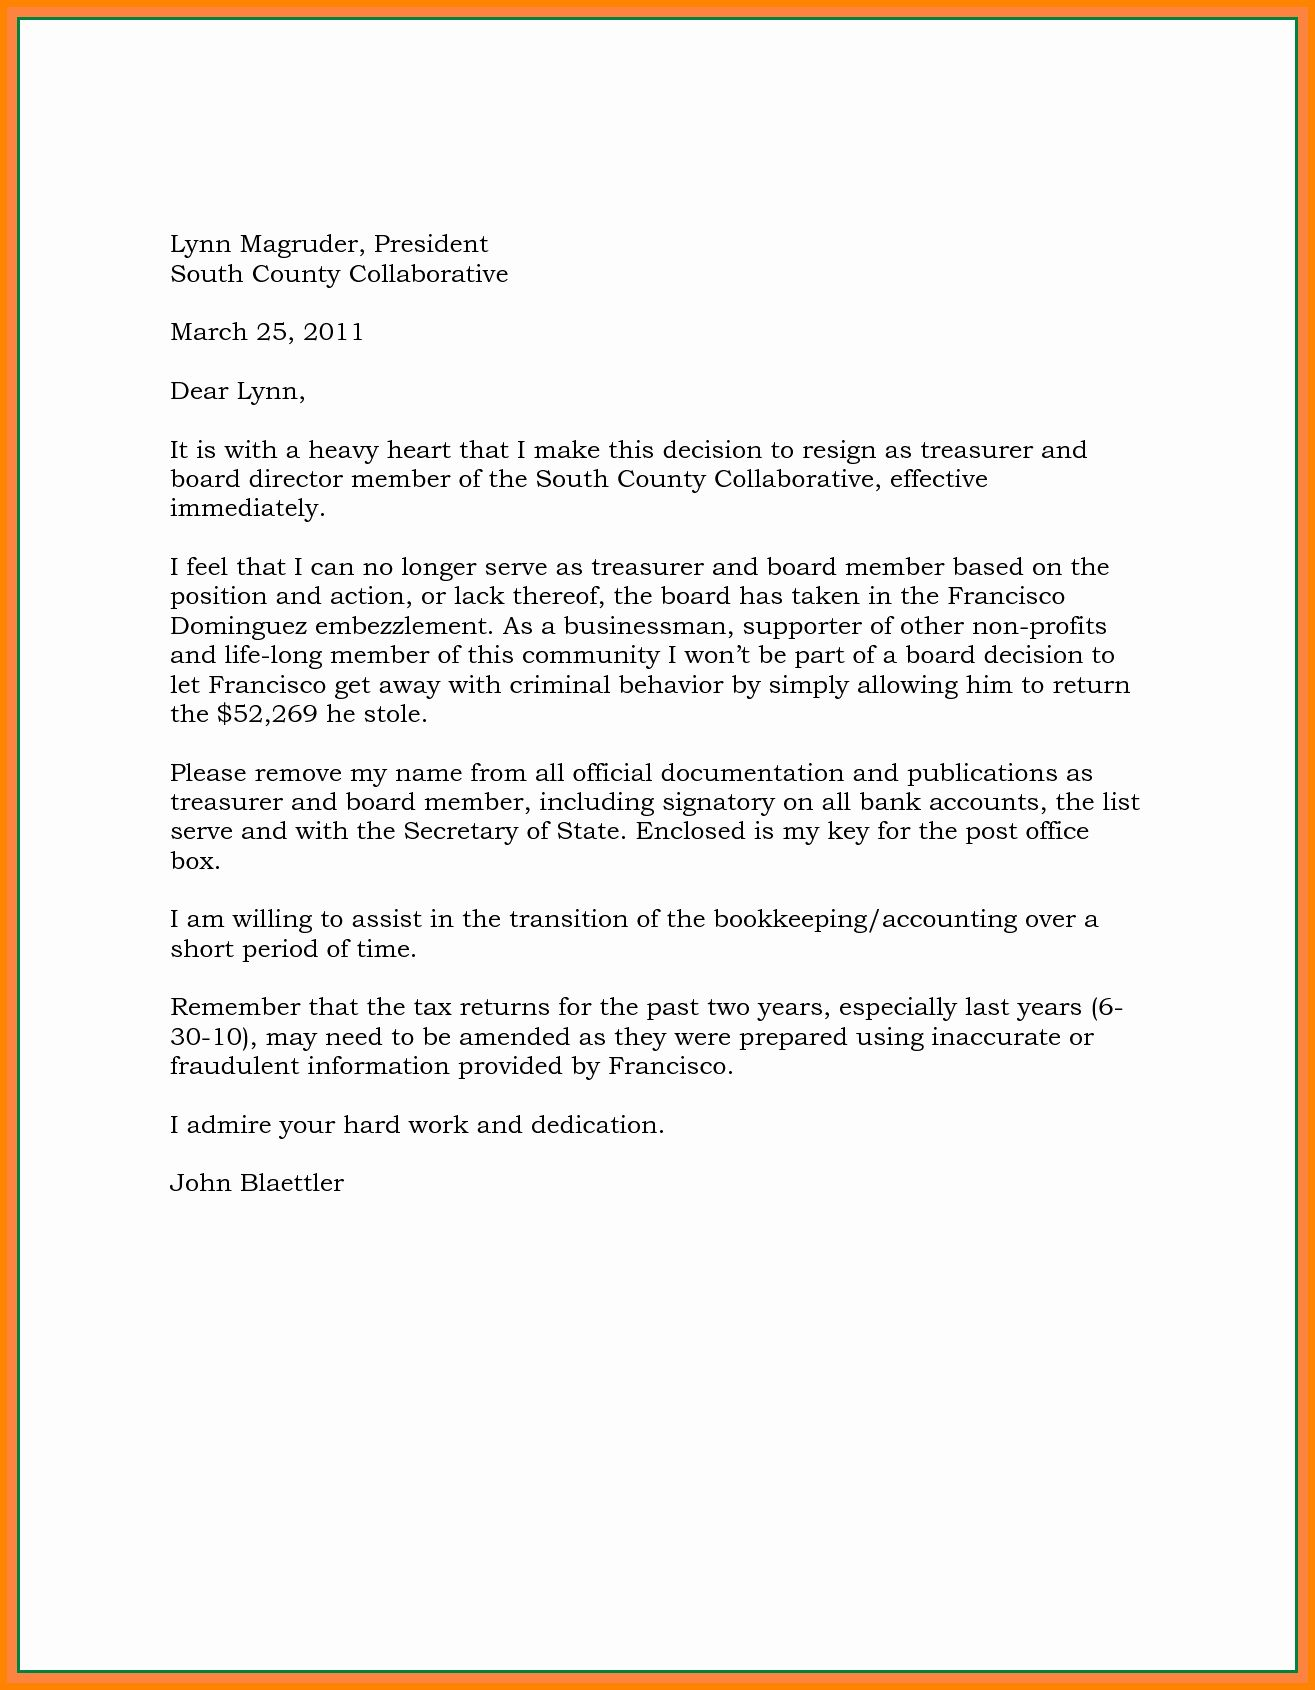 40 resignation letter effective immediately health care assistant cv template career objective for resume bank